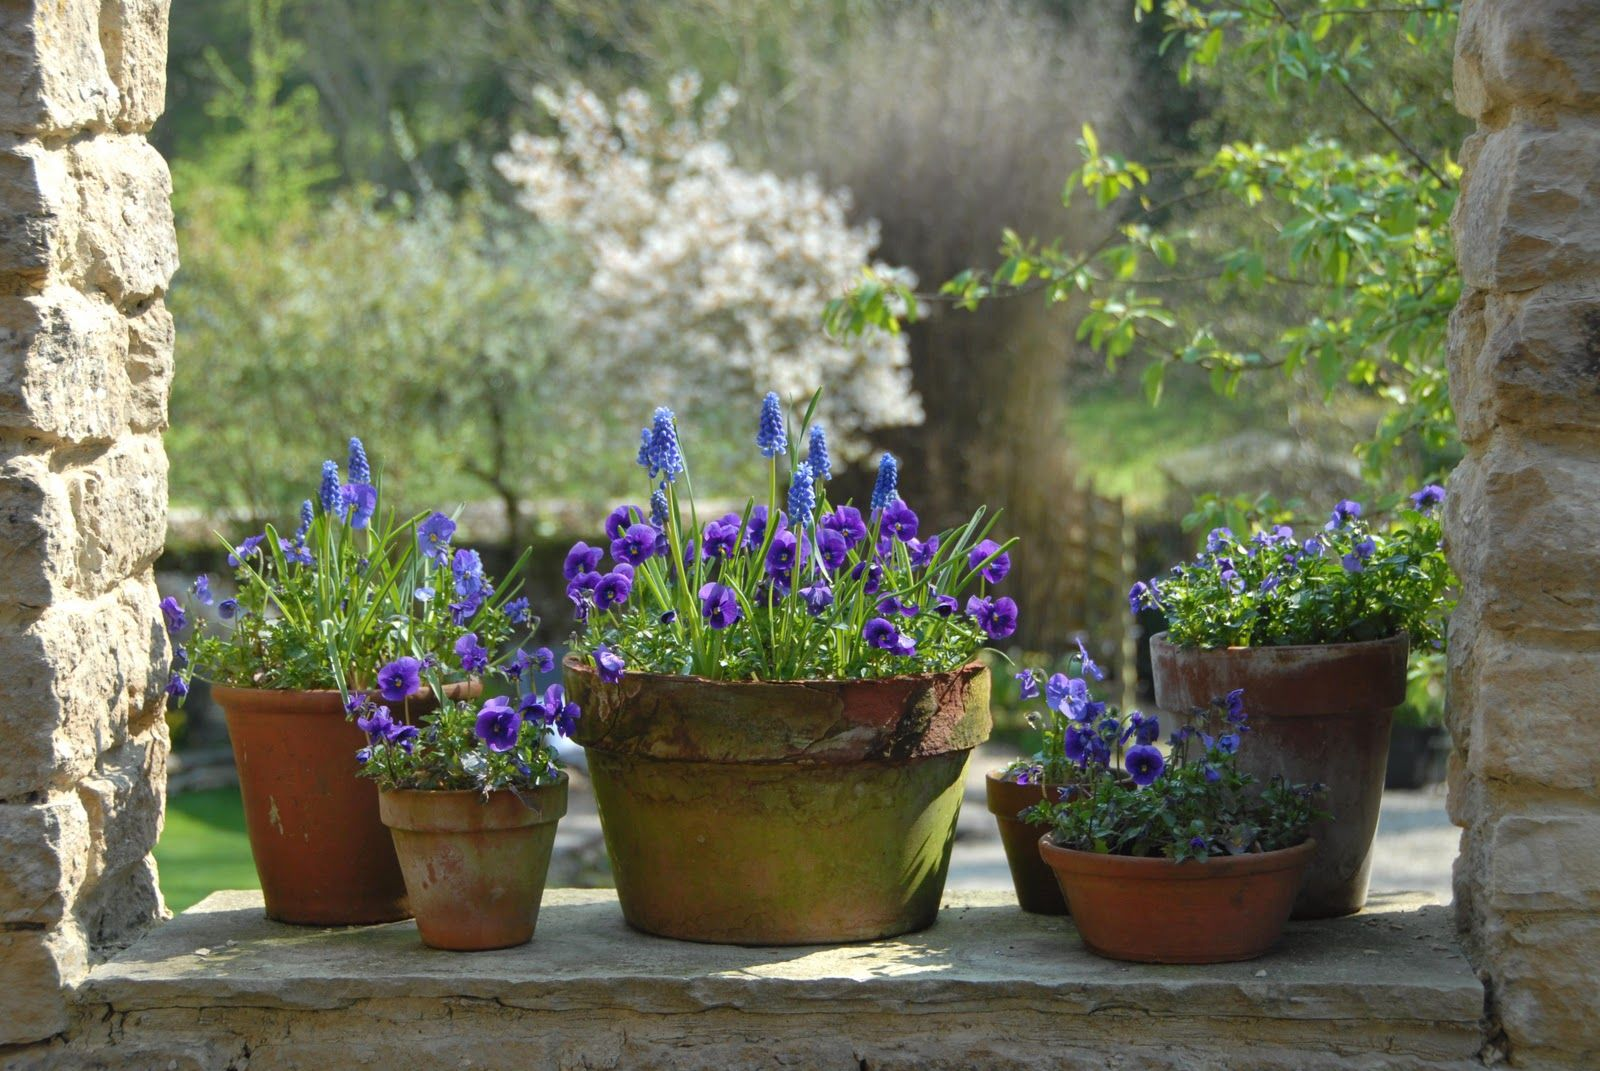 It never occurred to me to pot up some grape hyacinths and friends!  So pretty!